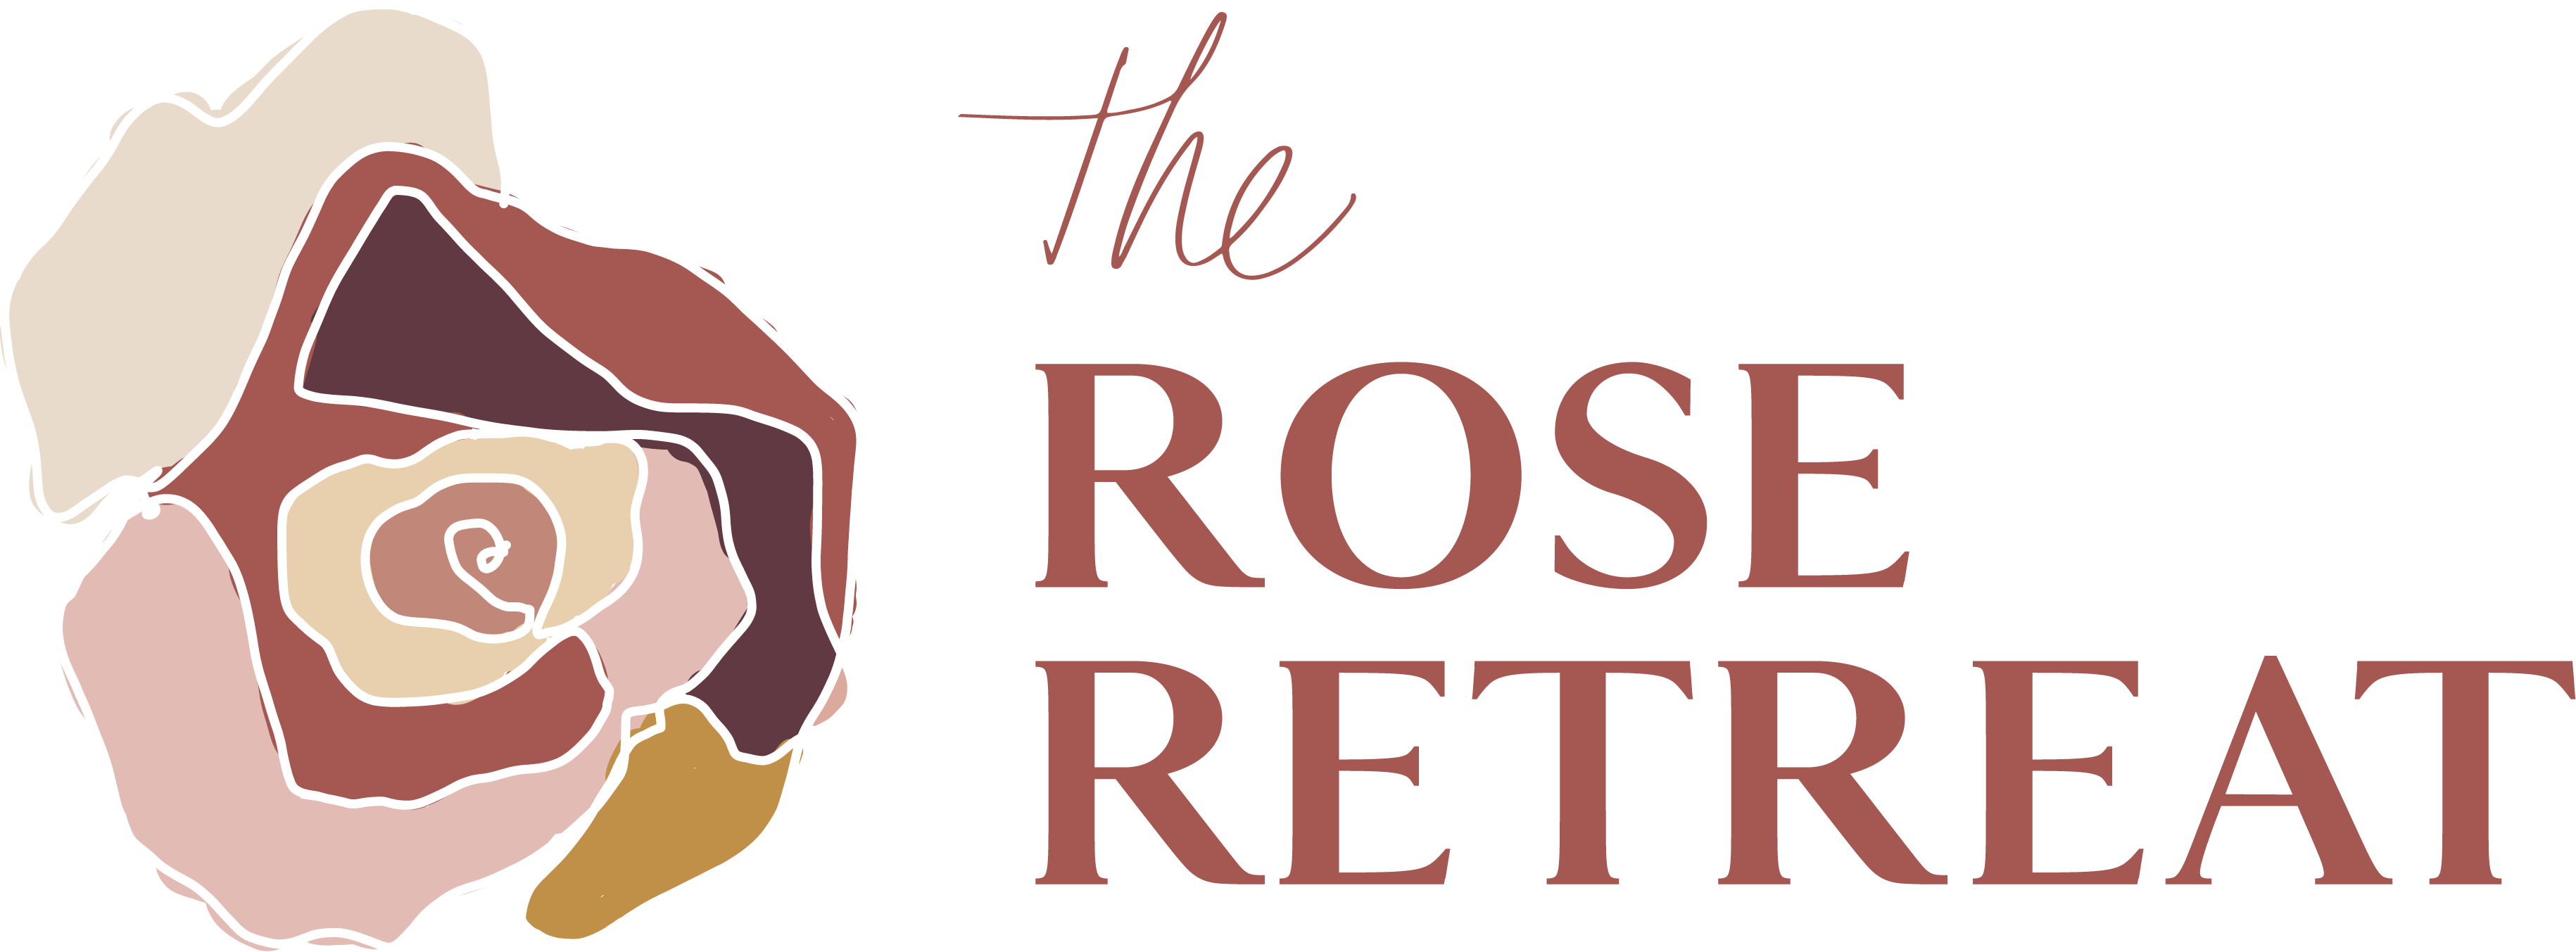 The Rose Retreat - Full Logo